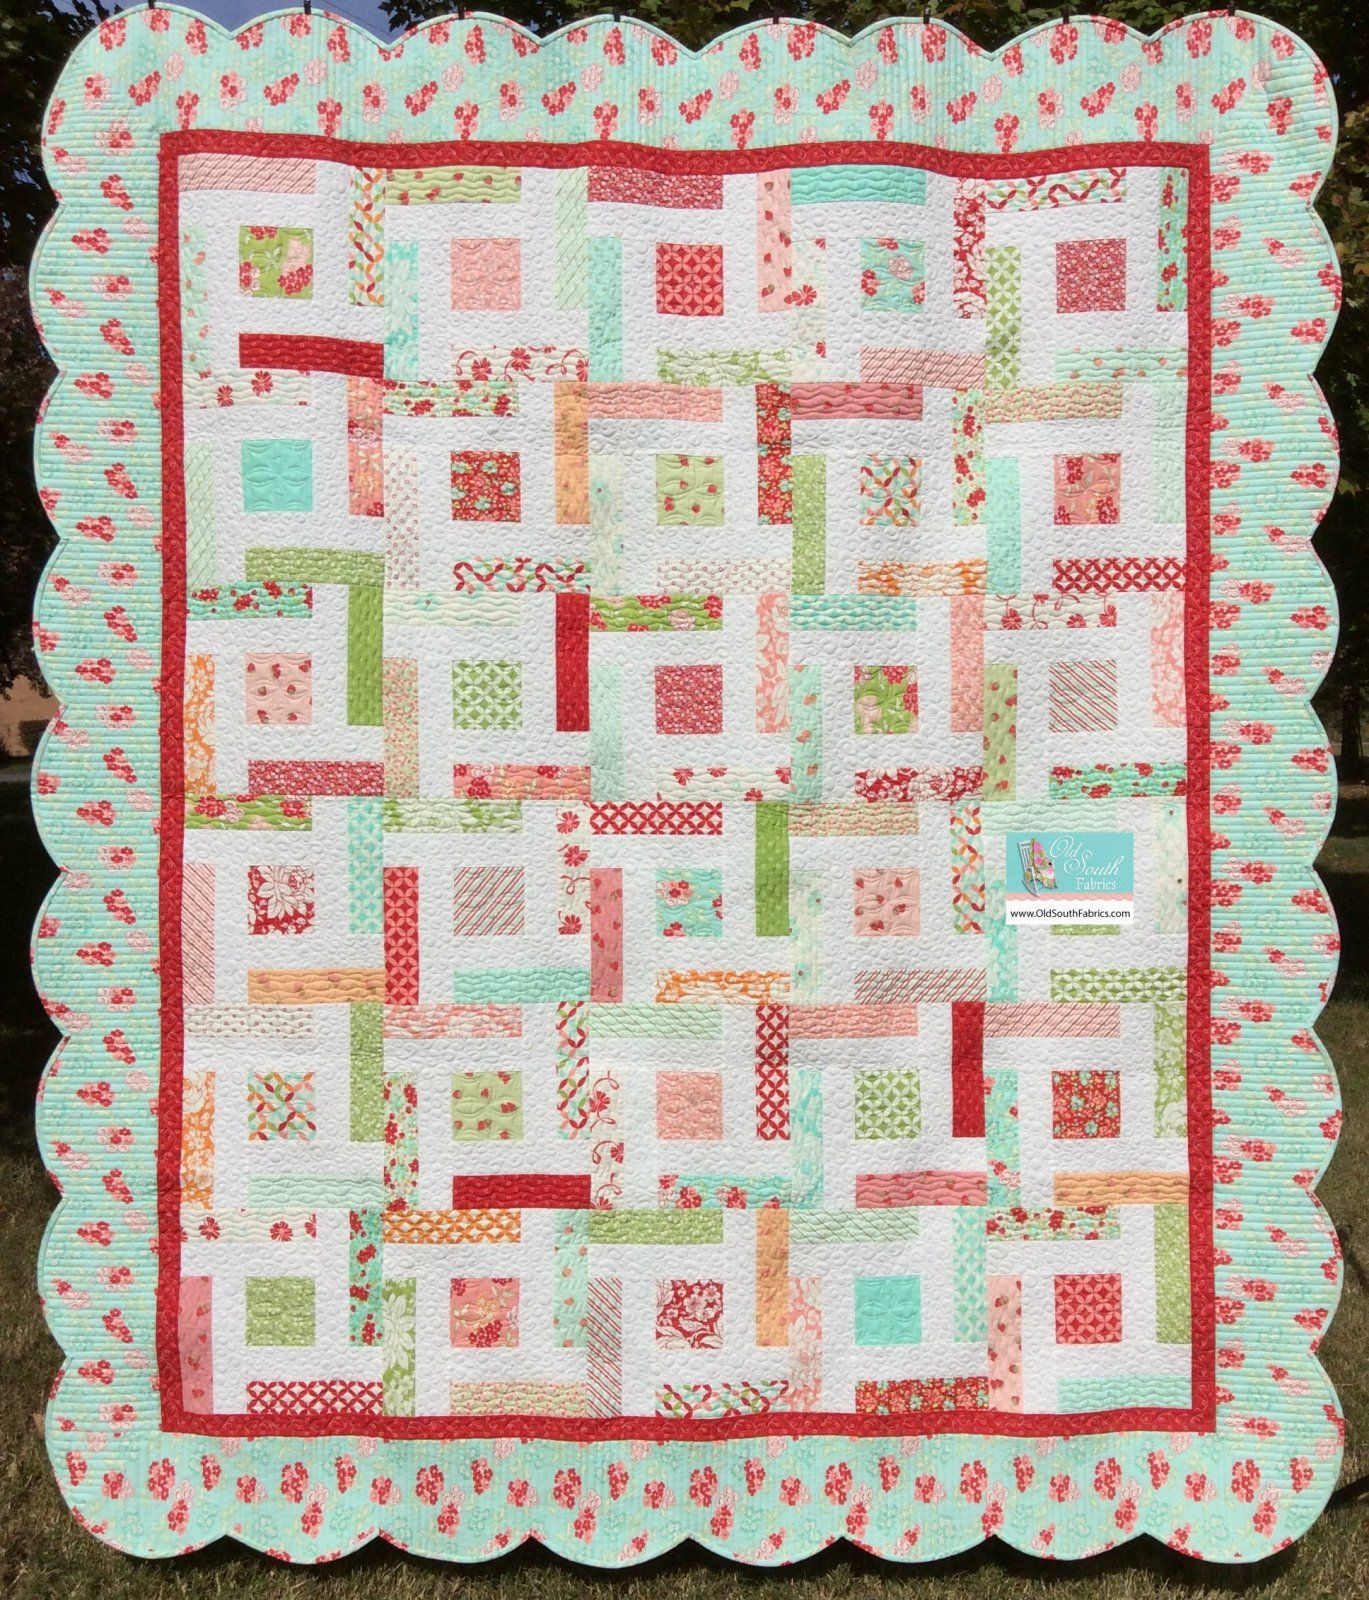 kits liberty fabrics online anna alice caroline cotlap quilt v kit lap product baby cot